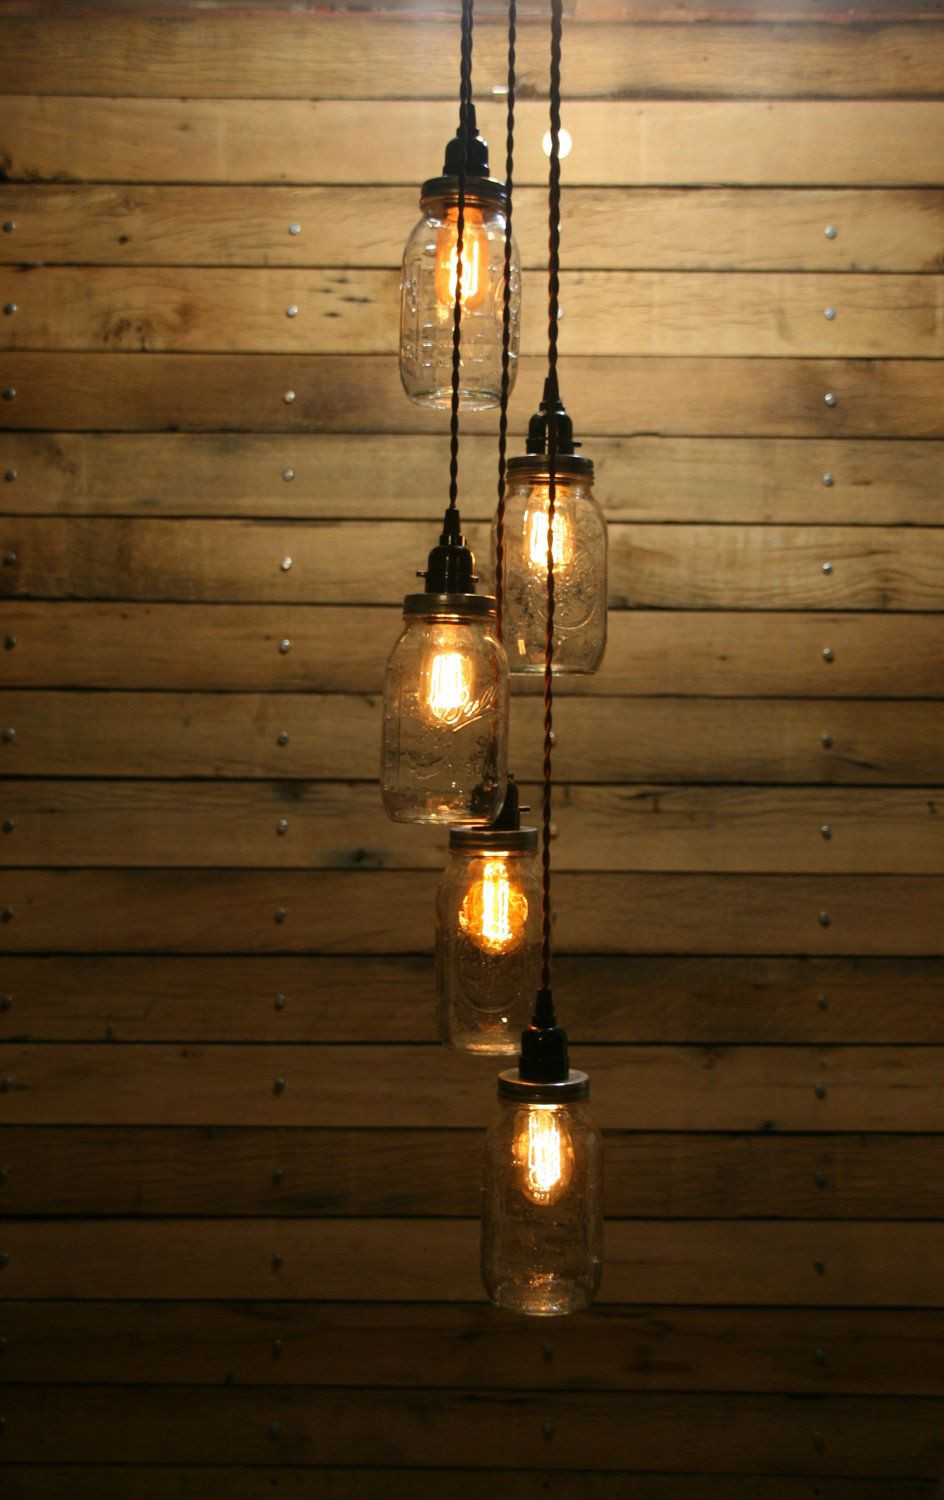 hanging lightbulb vase of 5 jar pendant light mason jar chandelier light staggered length within 5 jar pendant light mason jar chandelier light staggered length hanging mason jar hanging pendant light 179 00 via etsy